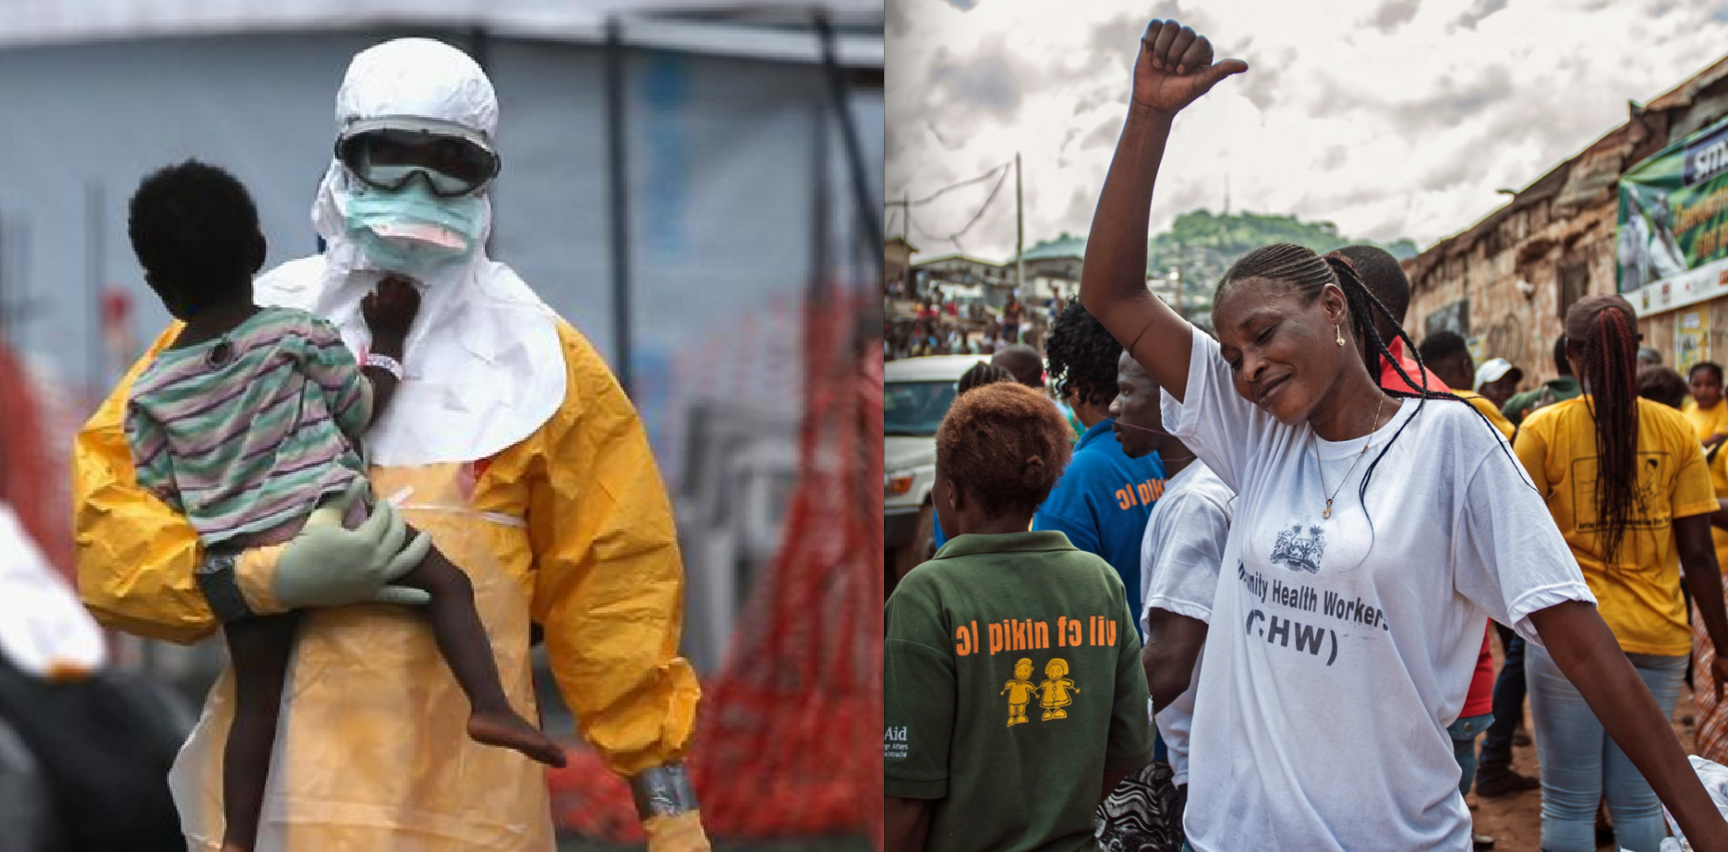 Victory in Congo: 2nd Largest Ebola Epidemic Ever Extinguished with New Vaccine, Partnerships